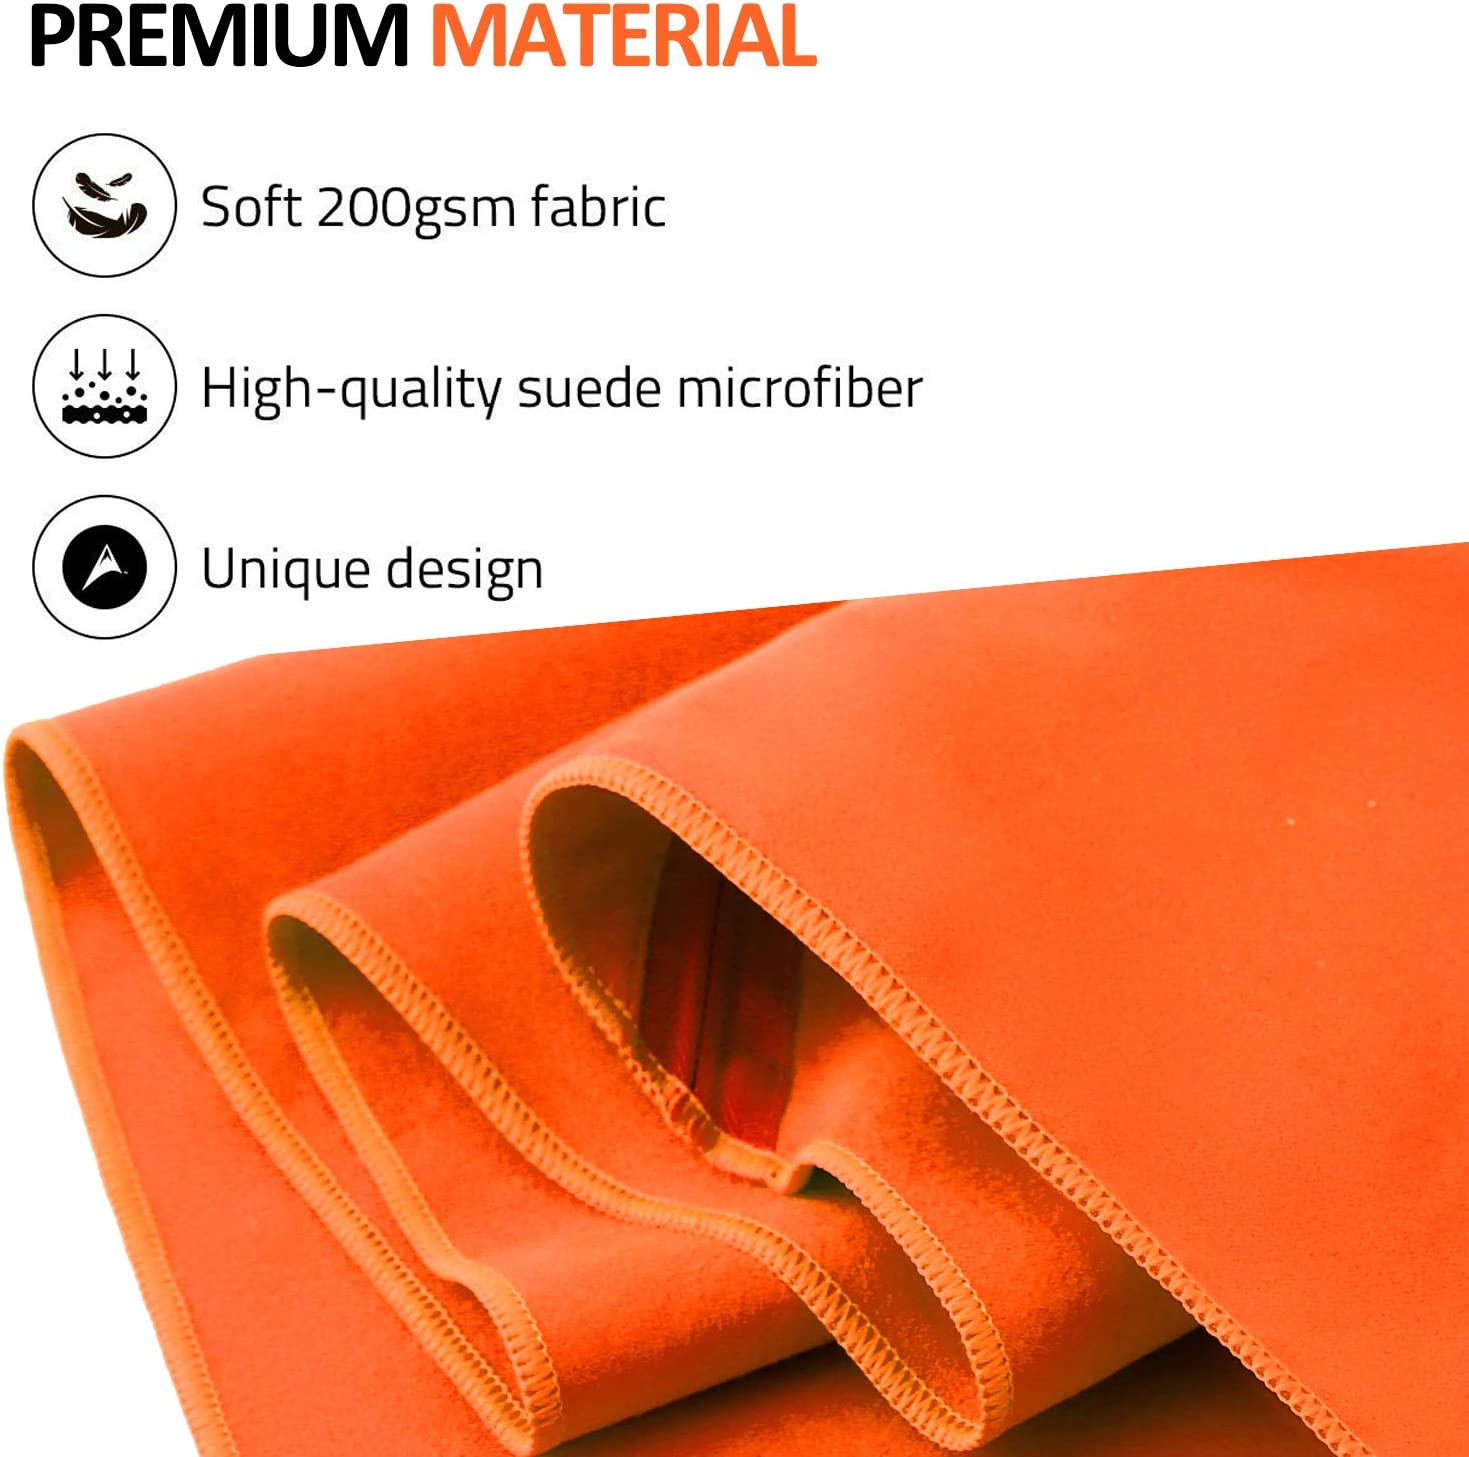 BAGAIL Microfiber Camping Towels Perfect Sports & Travel & Beach Towel. Fast Drying - Super Absorbent - Ultra Compact. Suitable for Gym, Beach, Swimming, Backpacking : Sports & Outdoors